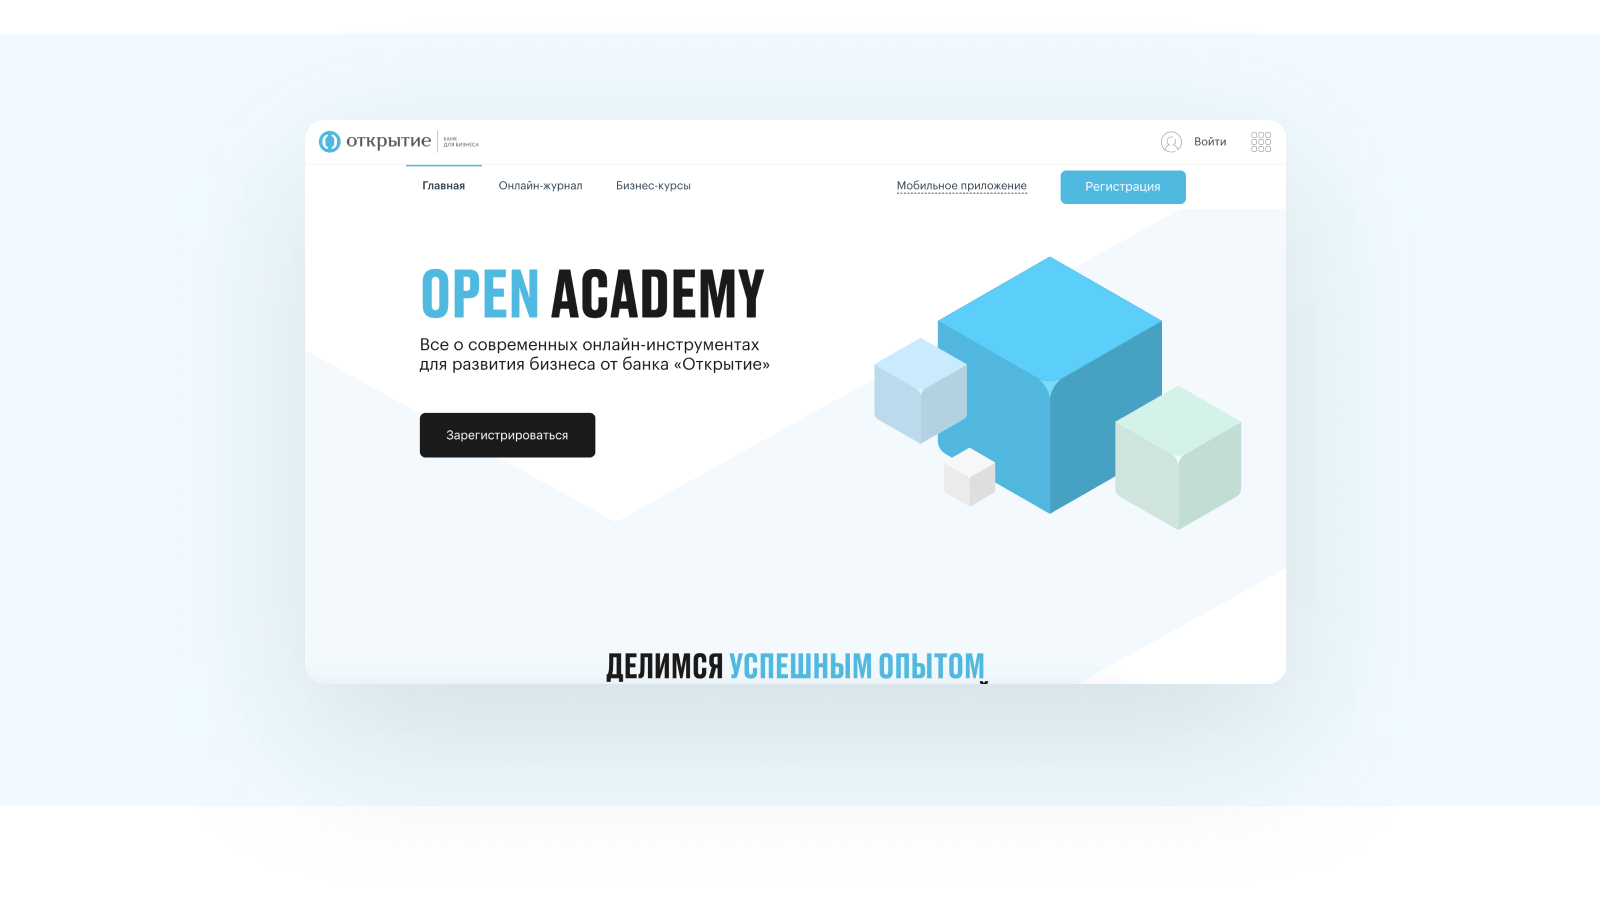 Open Academy made by Python